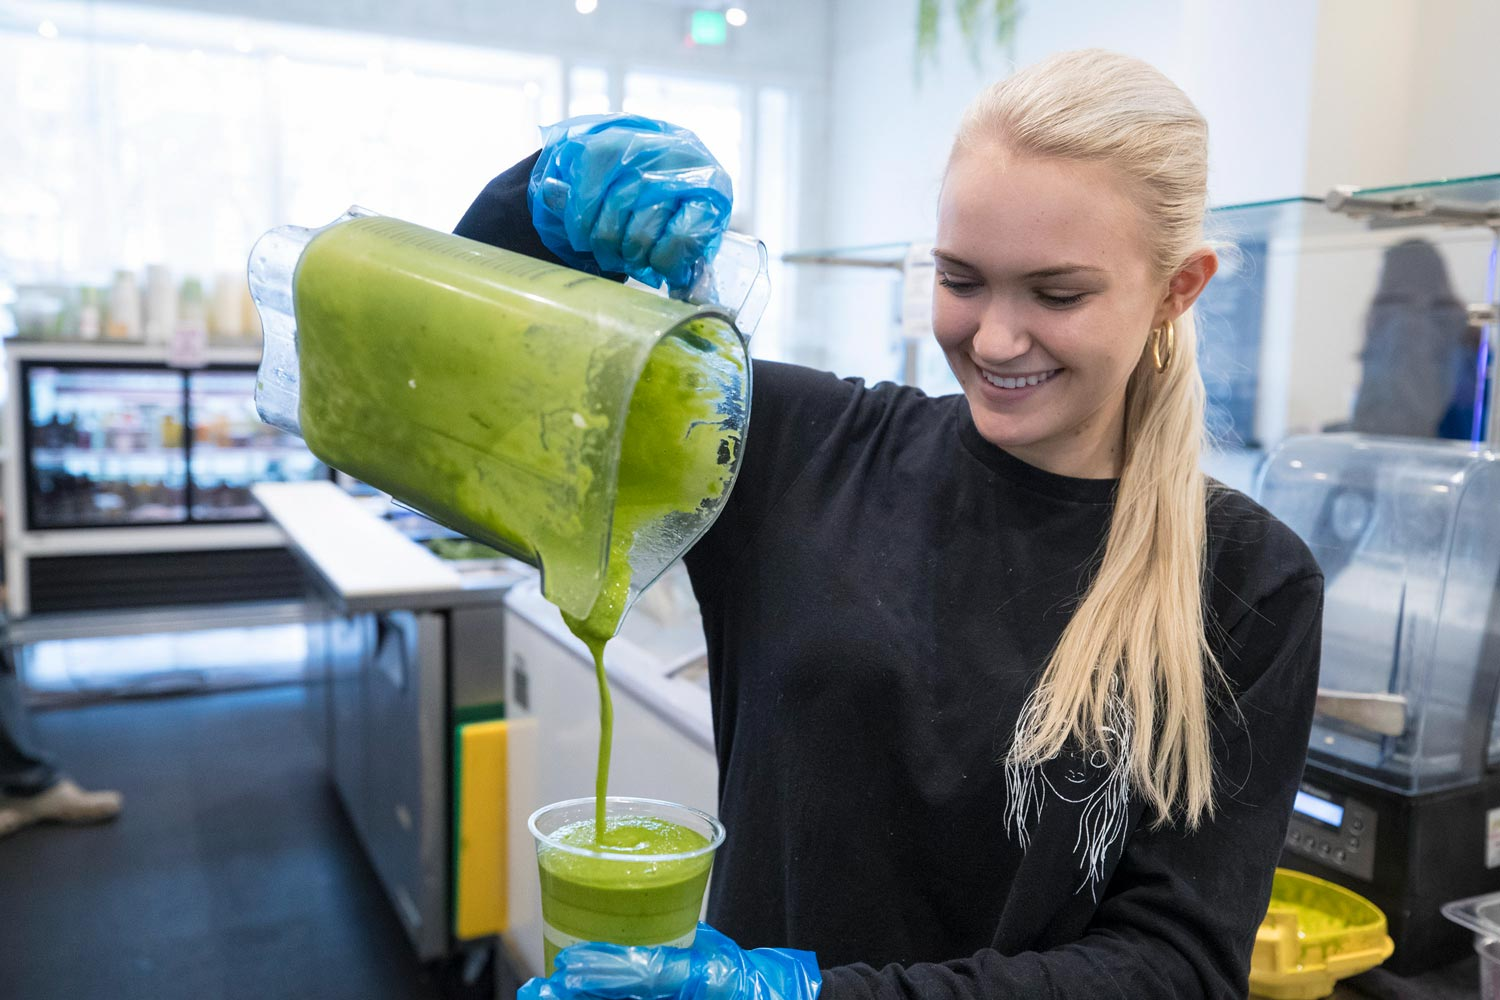 The juices and smoothies have become popular with students, and the company's food items have a growing following.